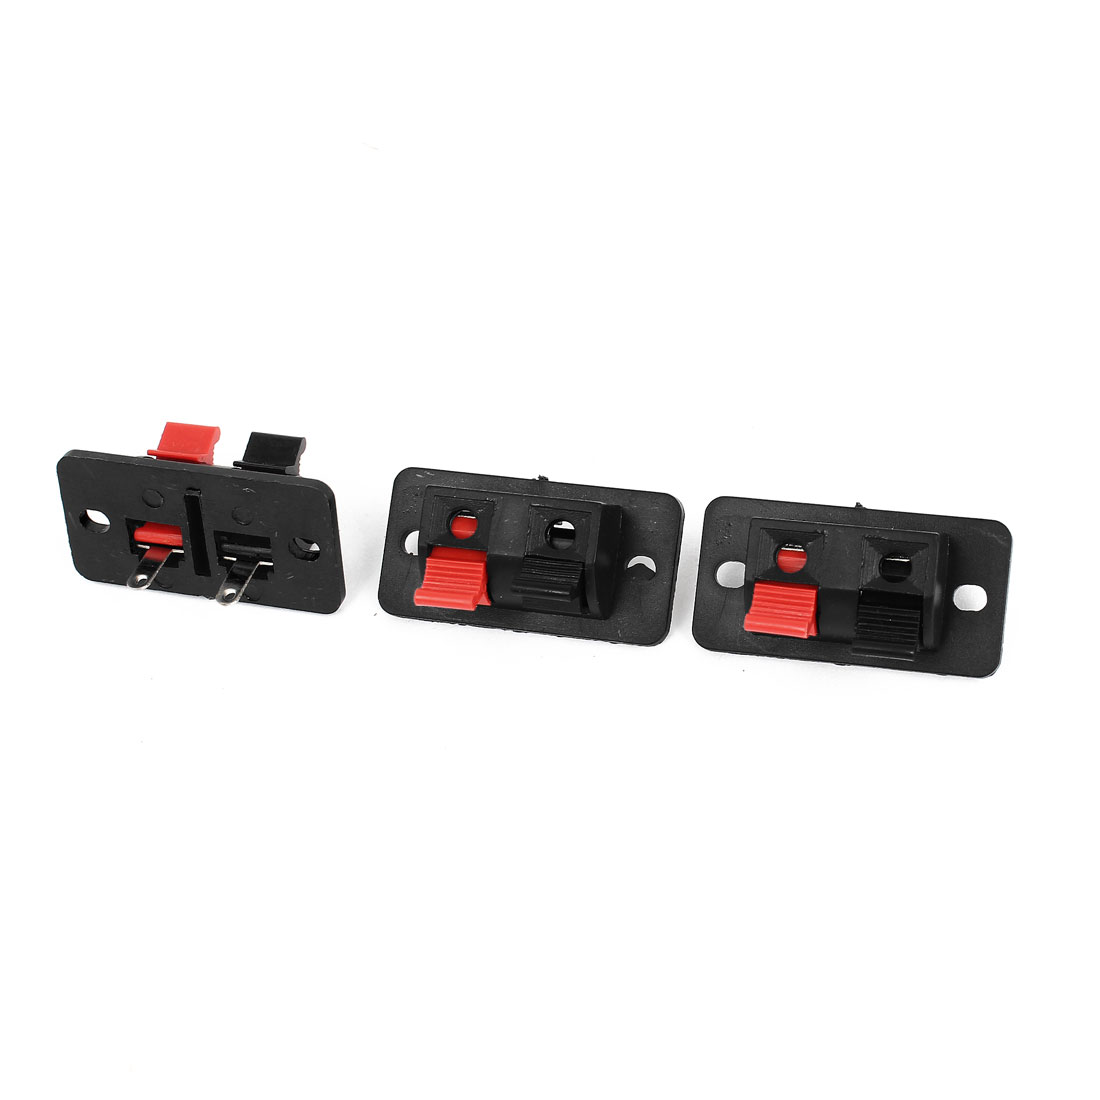 3pcs Spring Loaded Push In Type 2 Positions Speaker Terminal Connector Black Red